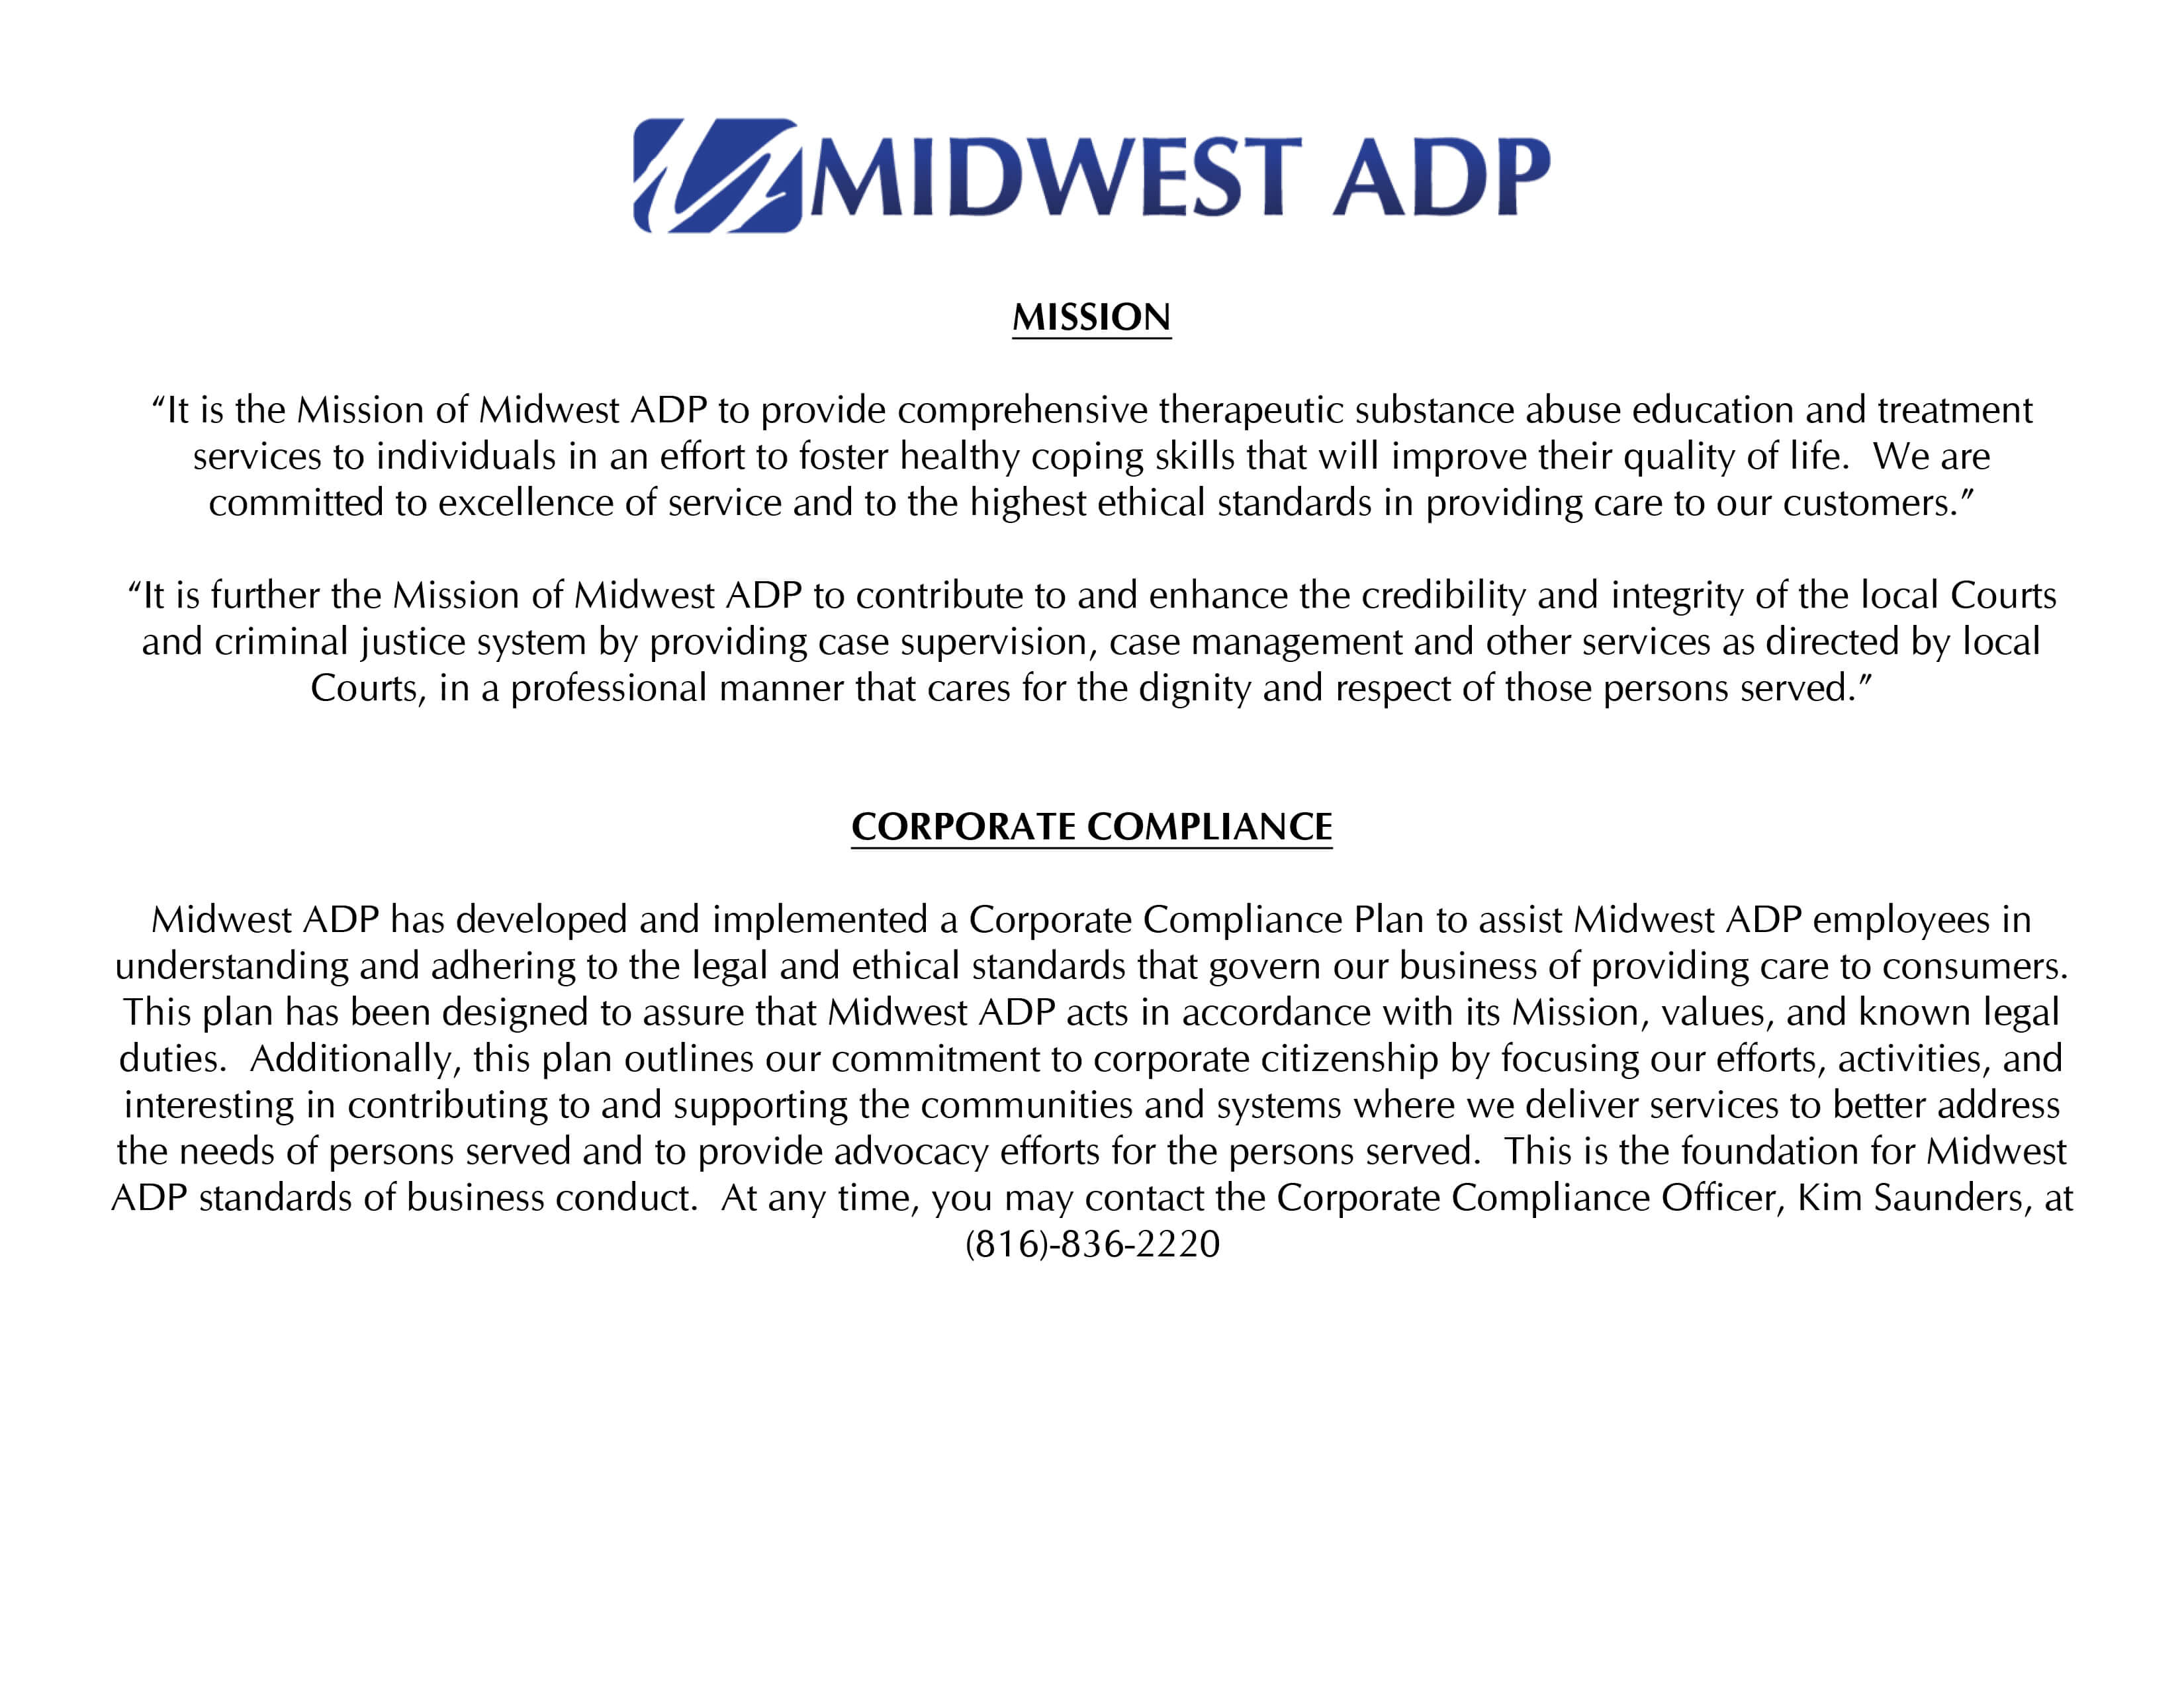 MIDWEST ADP - Forms